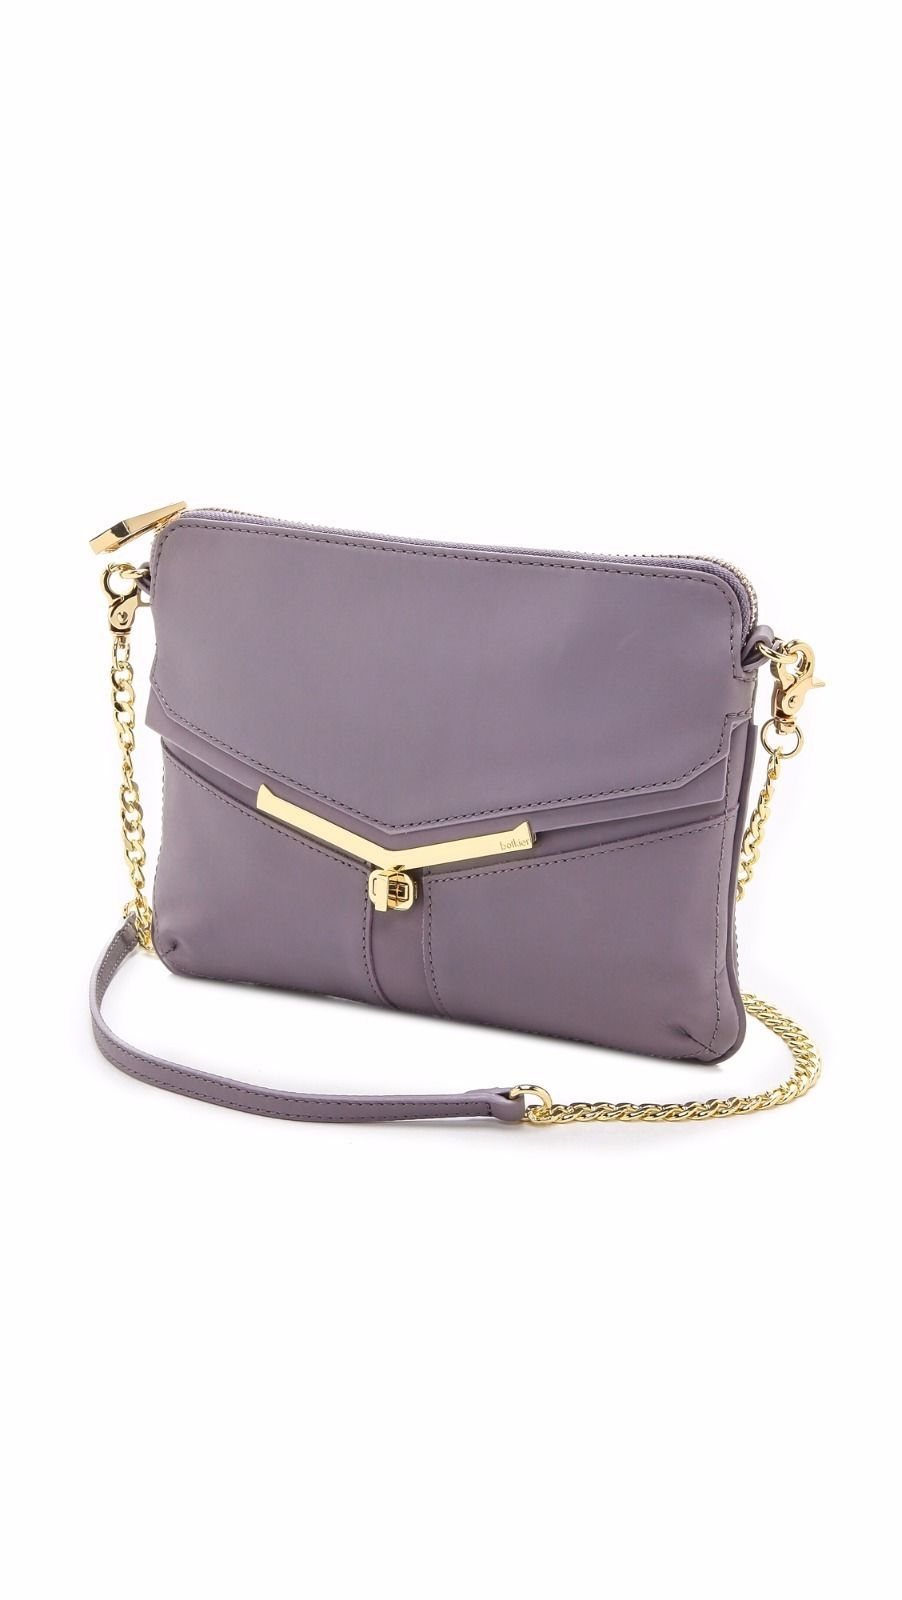 Primary image for Botkier Lavender Valentina Crossbody Bag Convertible to Clutch